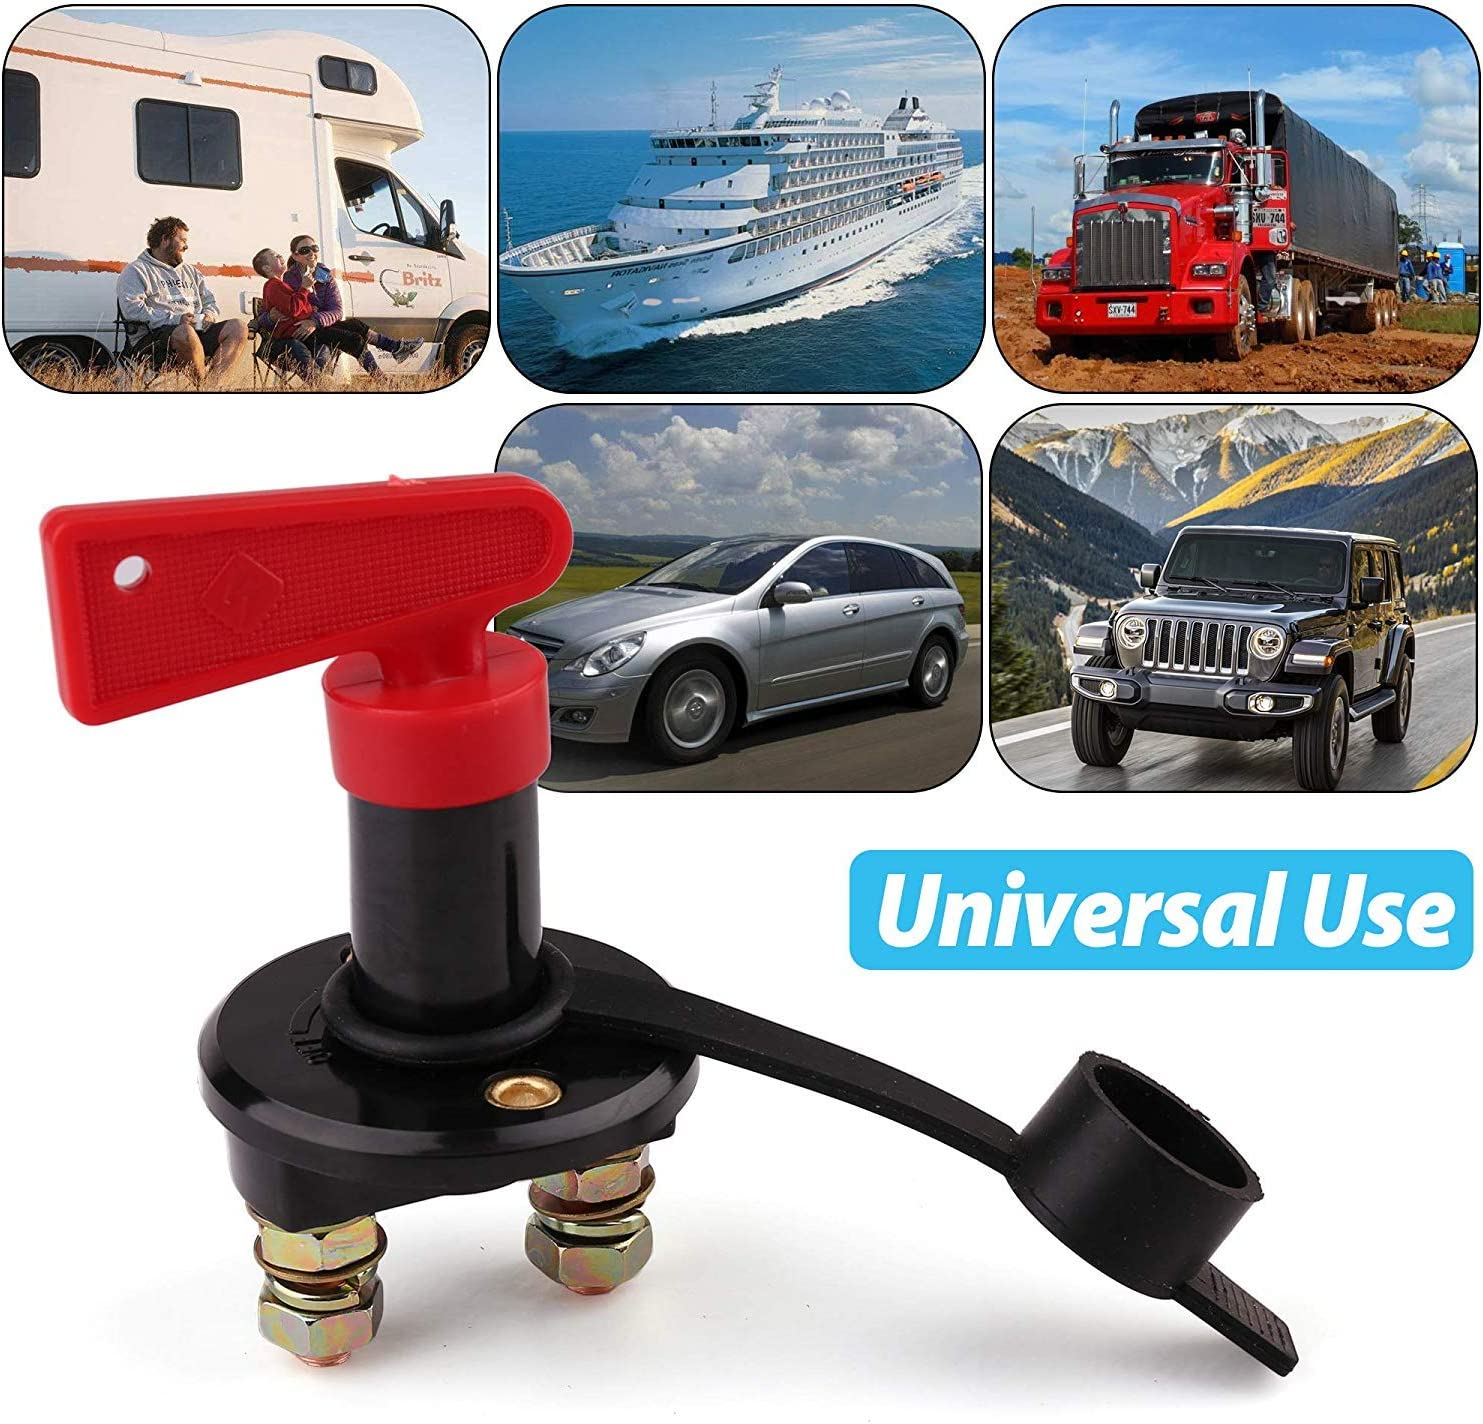 With Waterproof Key and Cover 6V 12V 24V Battery Isolator Power Kill Switch for Marine Car Boat RV ATV Vehicles LotFancy 2 PCS Battery Disconnect Switch